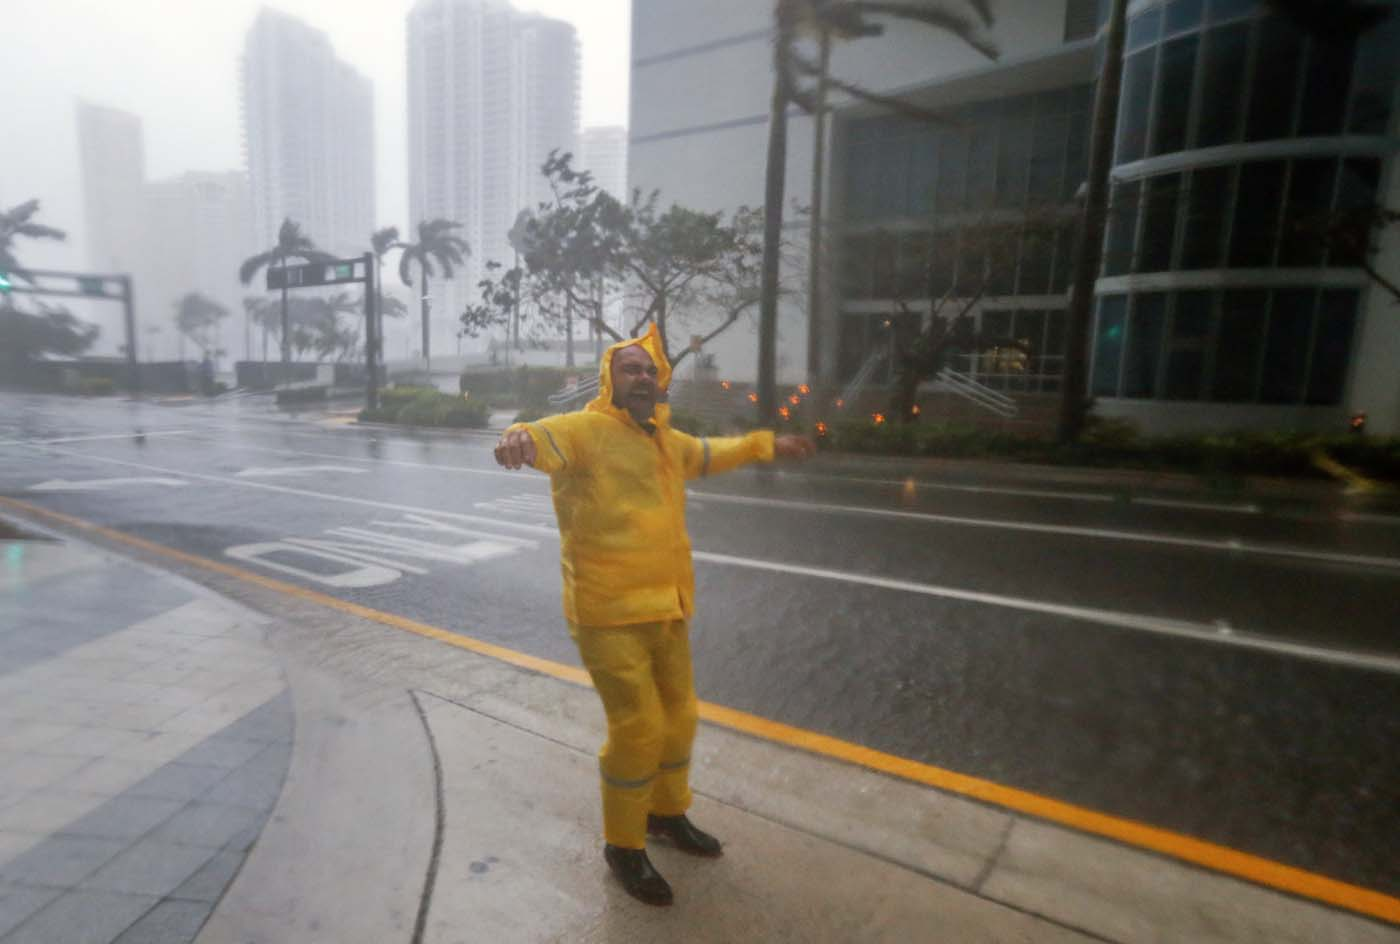 ELX01. Miami (United States), 10/09/2017.- A man braves the elemenst as the full effects of Hurricane Irma strike in Miami, Florida, USA, 10 September 2017. Many areas are under mandatory evacuation orders as Irma approaches Florida. The National Hurricane Center has rated Irma as a Category 4 storm as the eye crosses the lower Florida Keys. (Estados Unidos) EFE/EPA/ERIK S. LESSER